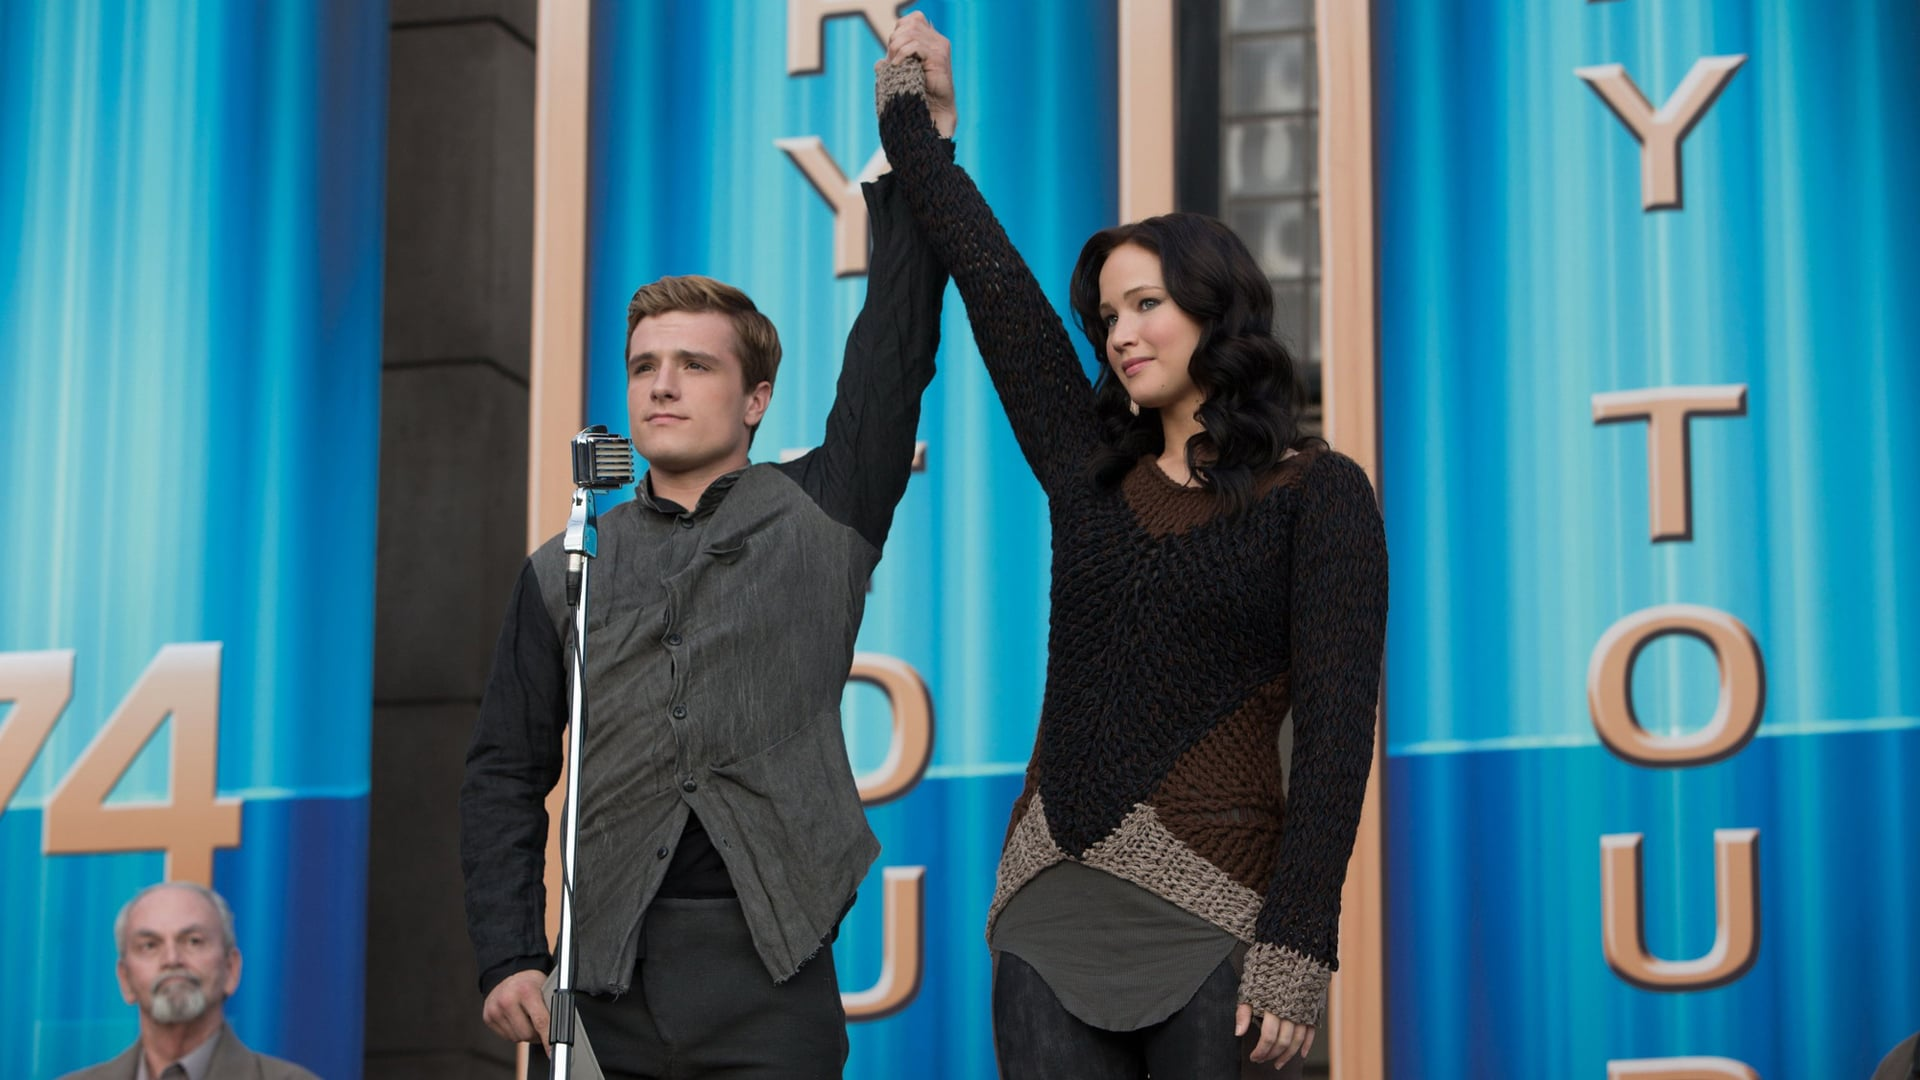 The Hunger Games: Catching Fire backdrop